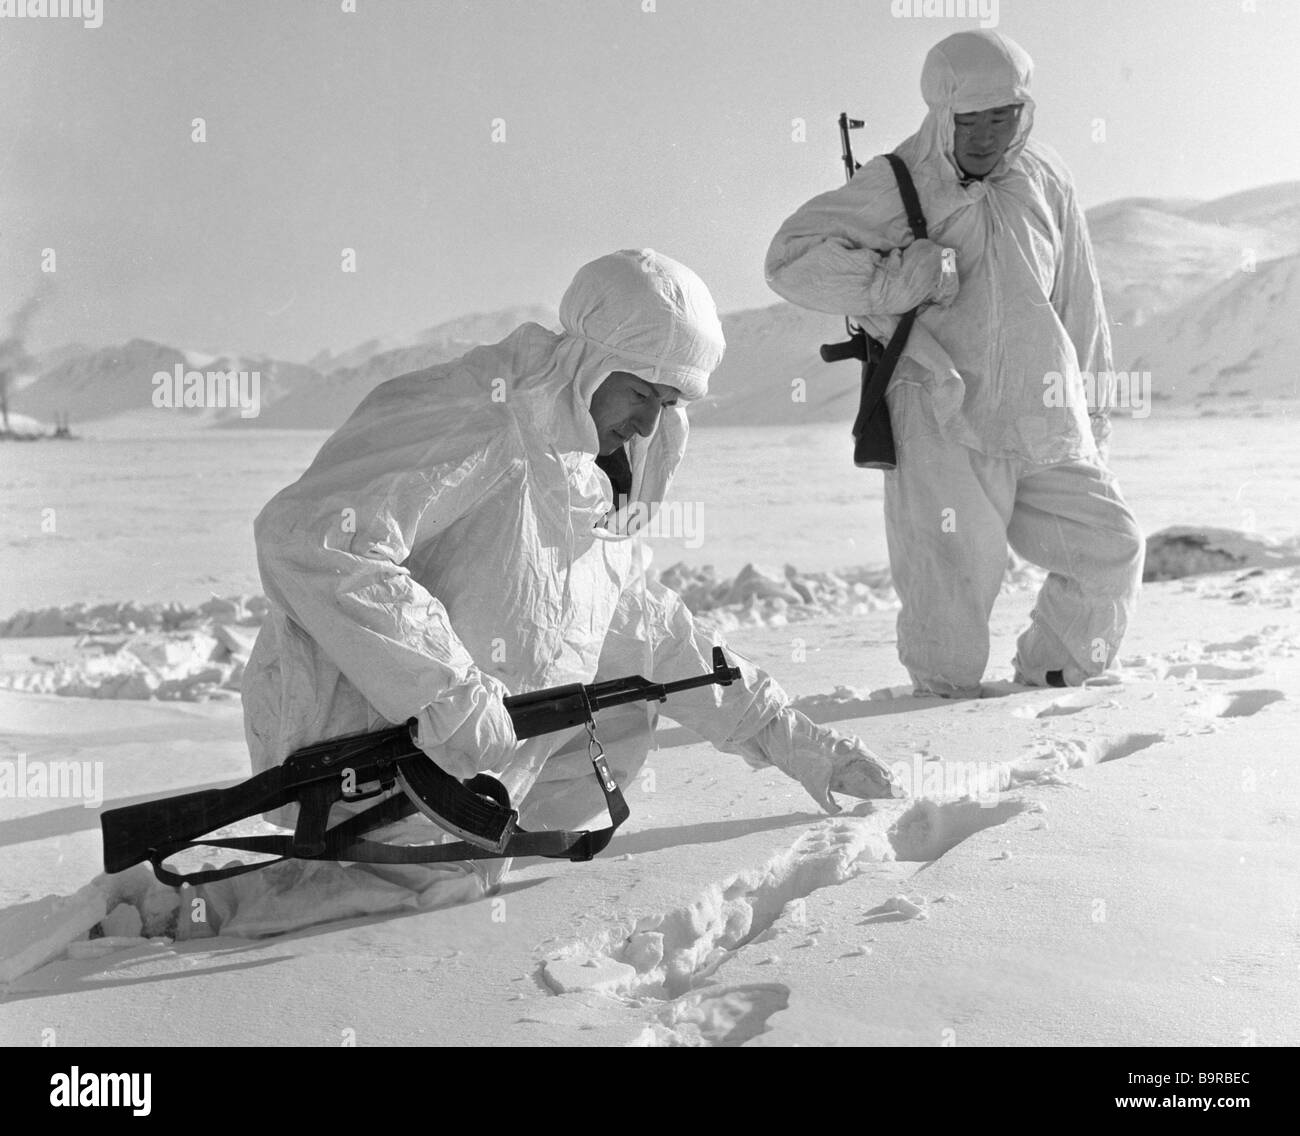 Frontier guards inspect the tracks on the snow - Stock Image